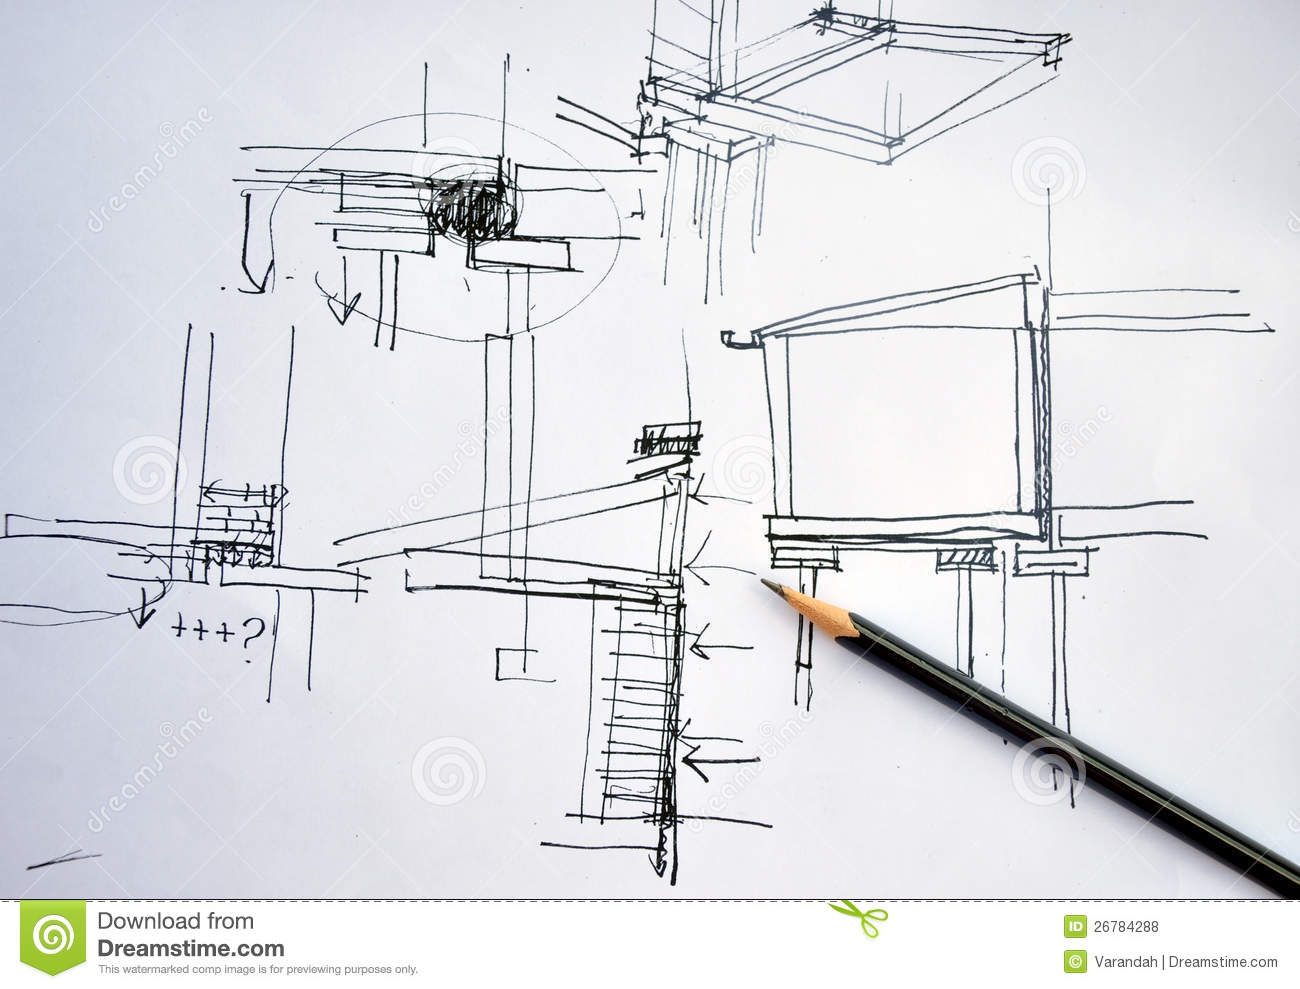 Draft hand drawing architecture plan with pencil royalty for How to draw architectural plans by hand